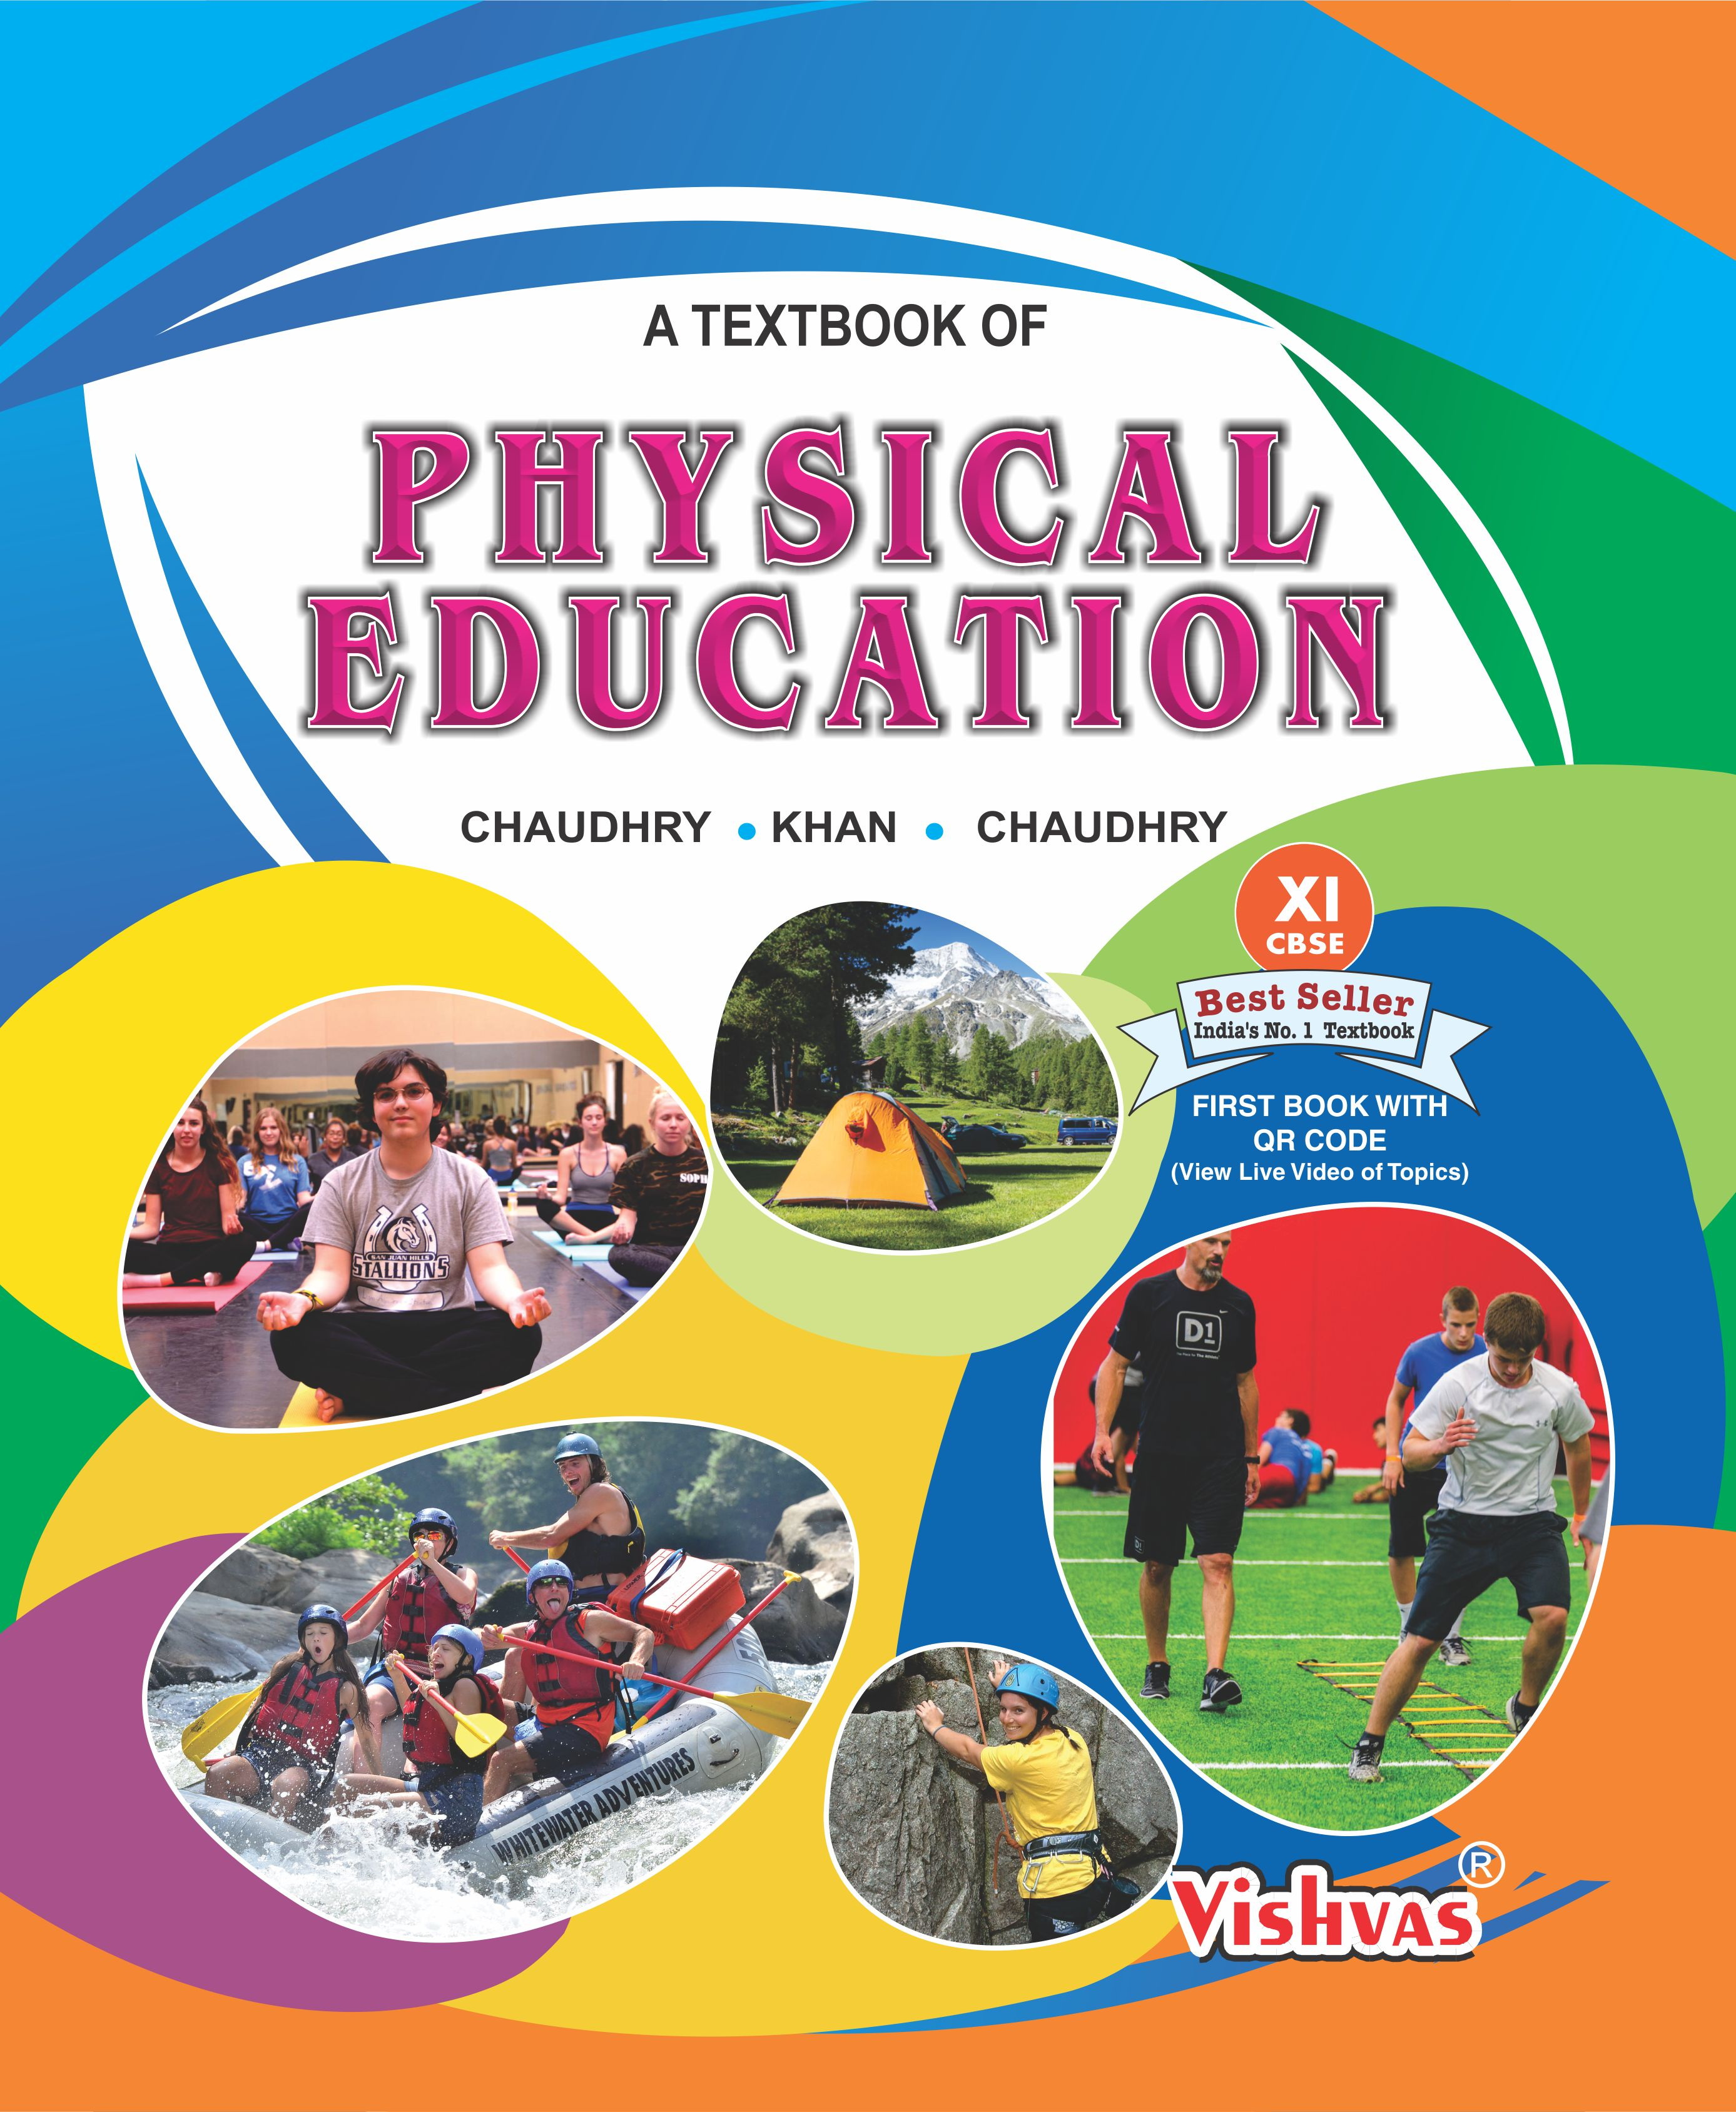 Physical education textbookclass xi cbse 2018 19 vishvasbooks physical education class xi textbook cbse 2018 19 vishvasbooks malvernweather Image collections